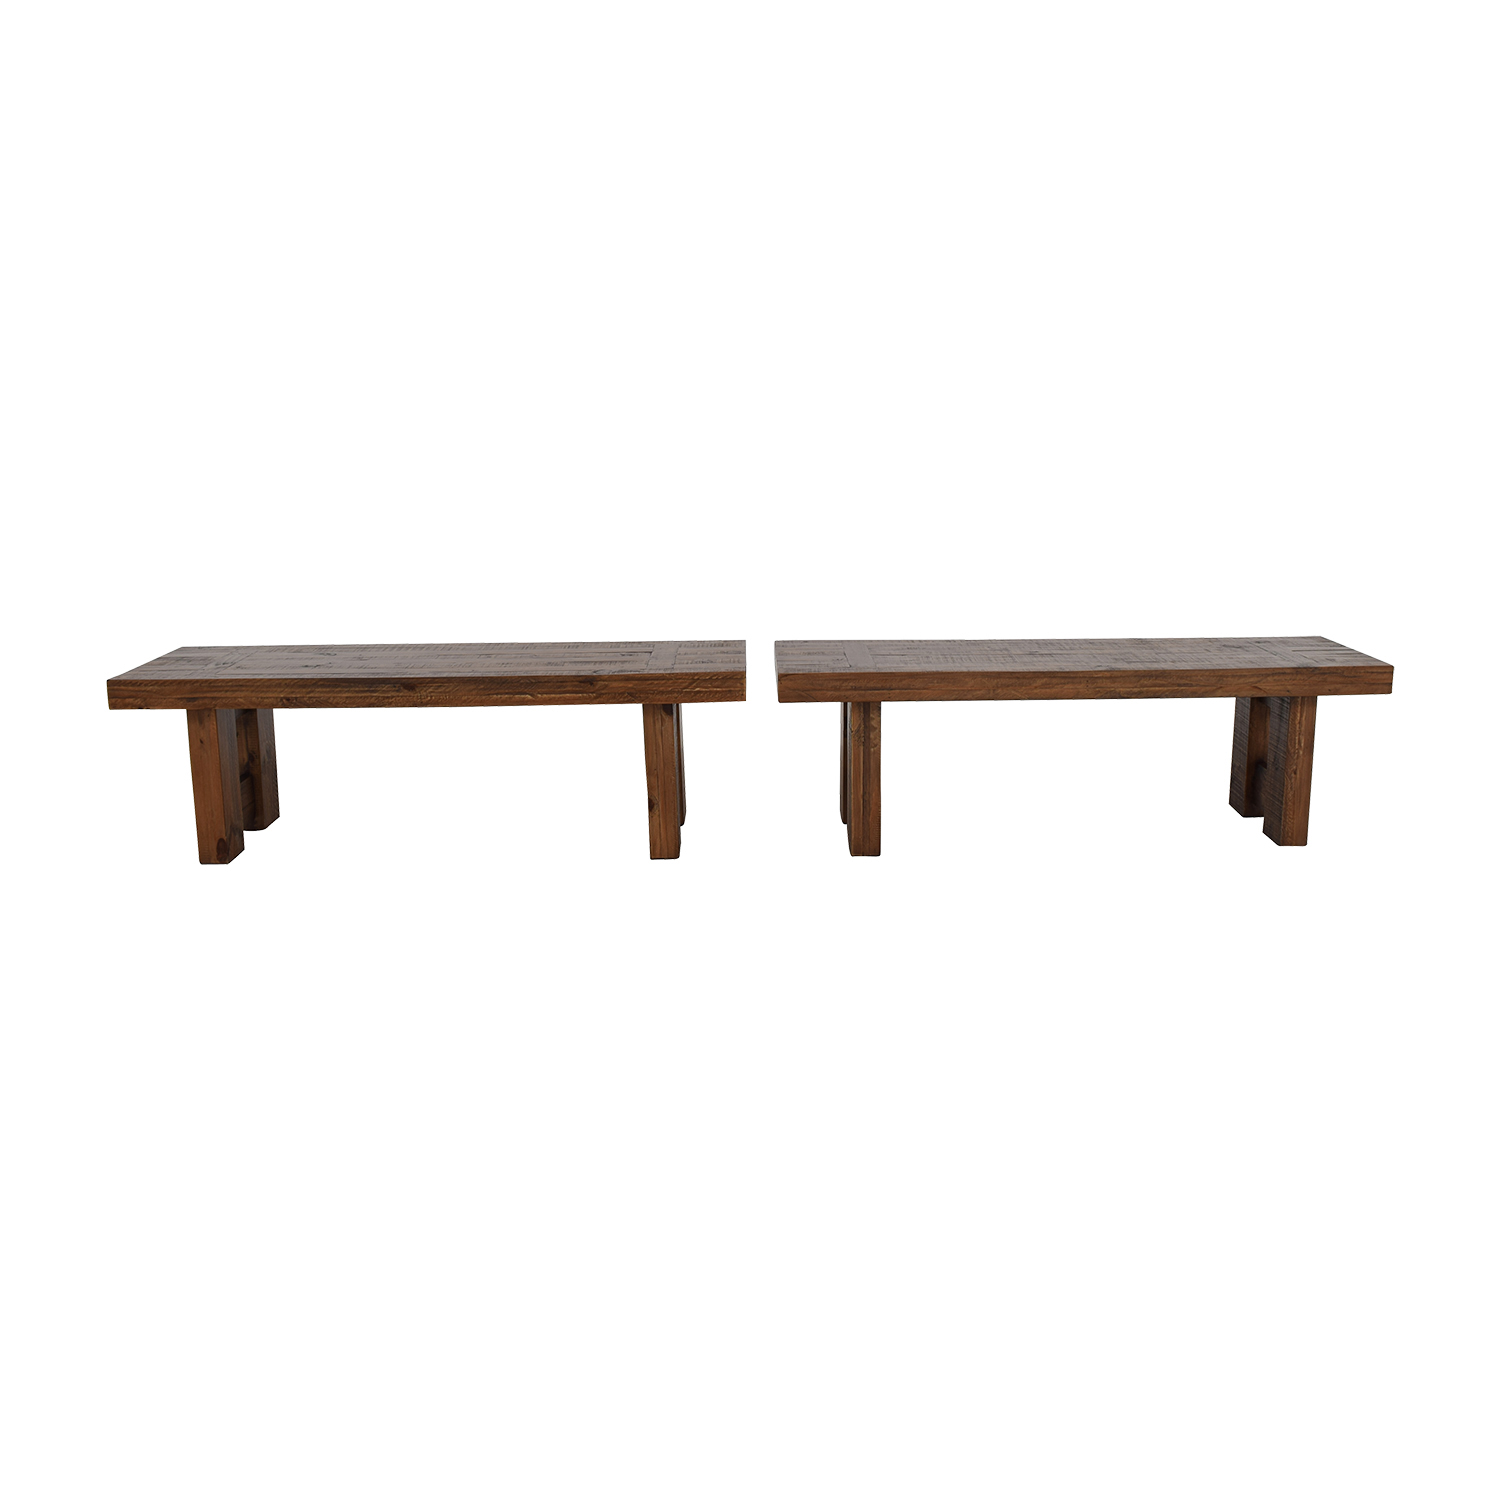 Jordans Furniture Jordans Furniture Acacia Rustic Wood Benches price